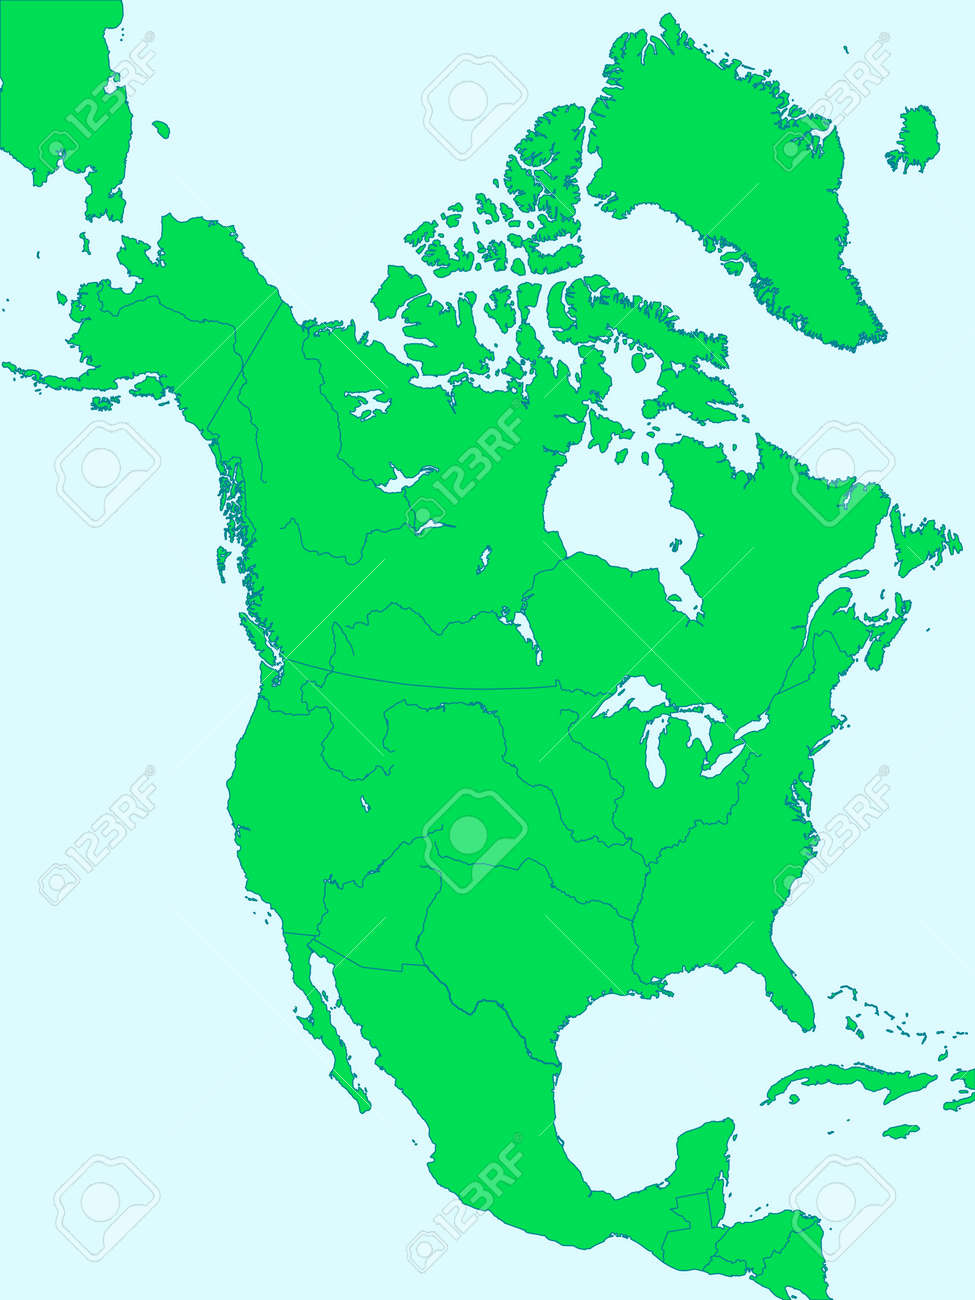 Map Of America Rivers.Silhouette Map Of The North America With Major Rivers And Lakes